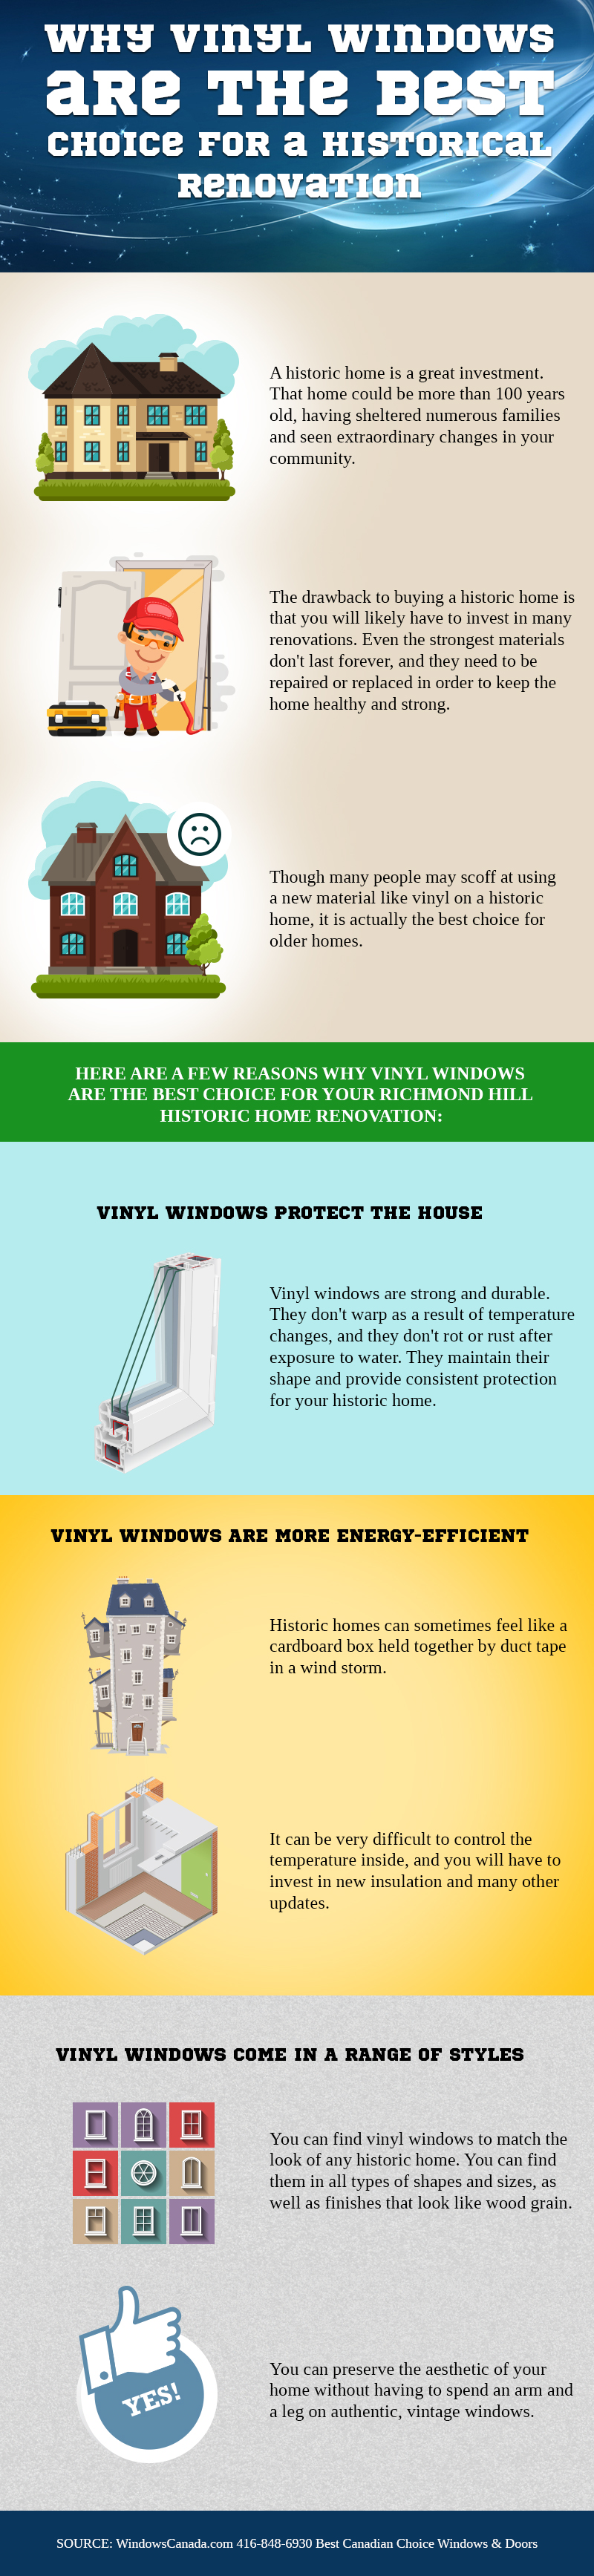 Vinyl Windows for a Historical Renovation - Infographic